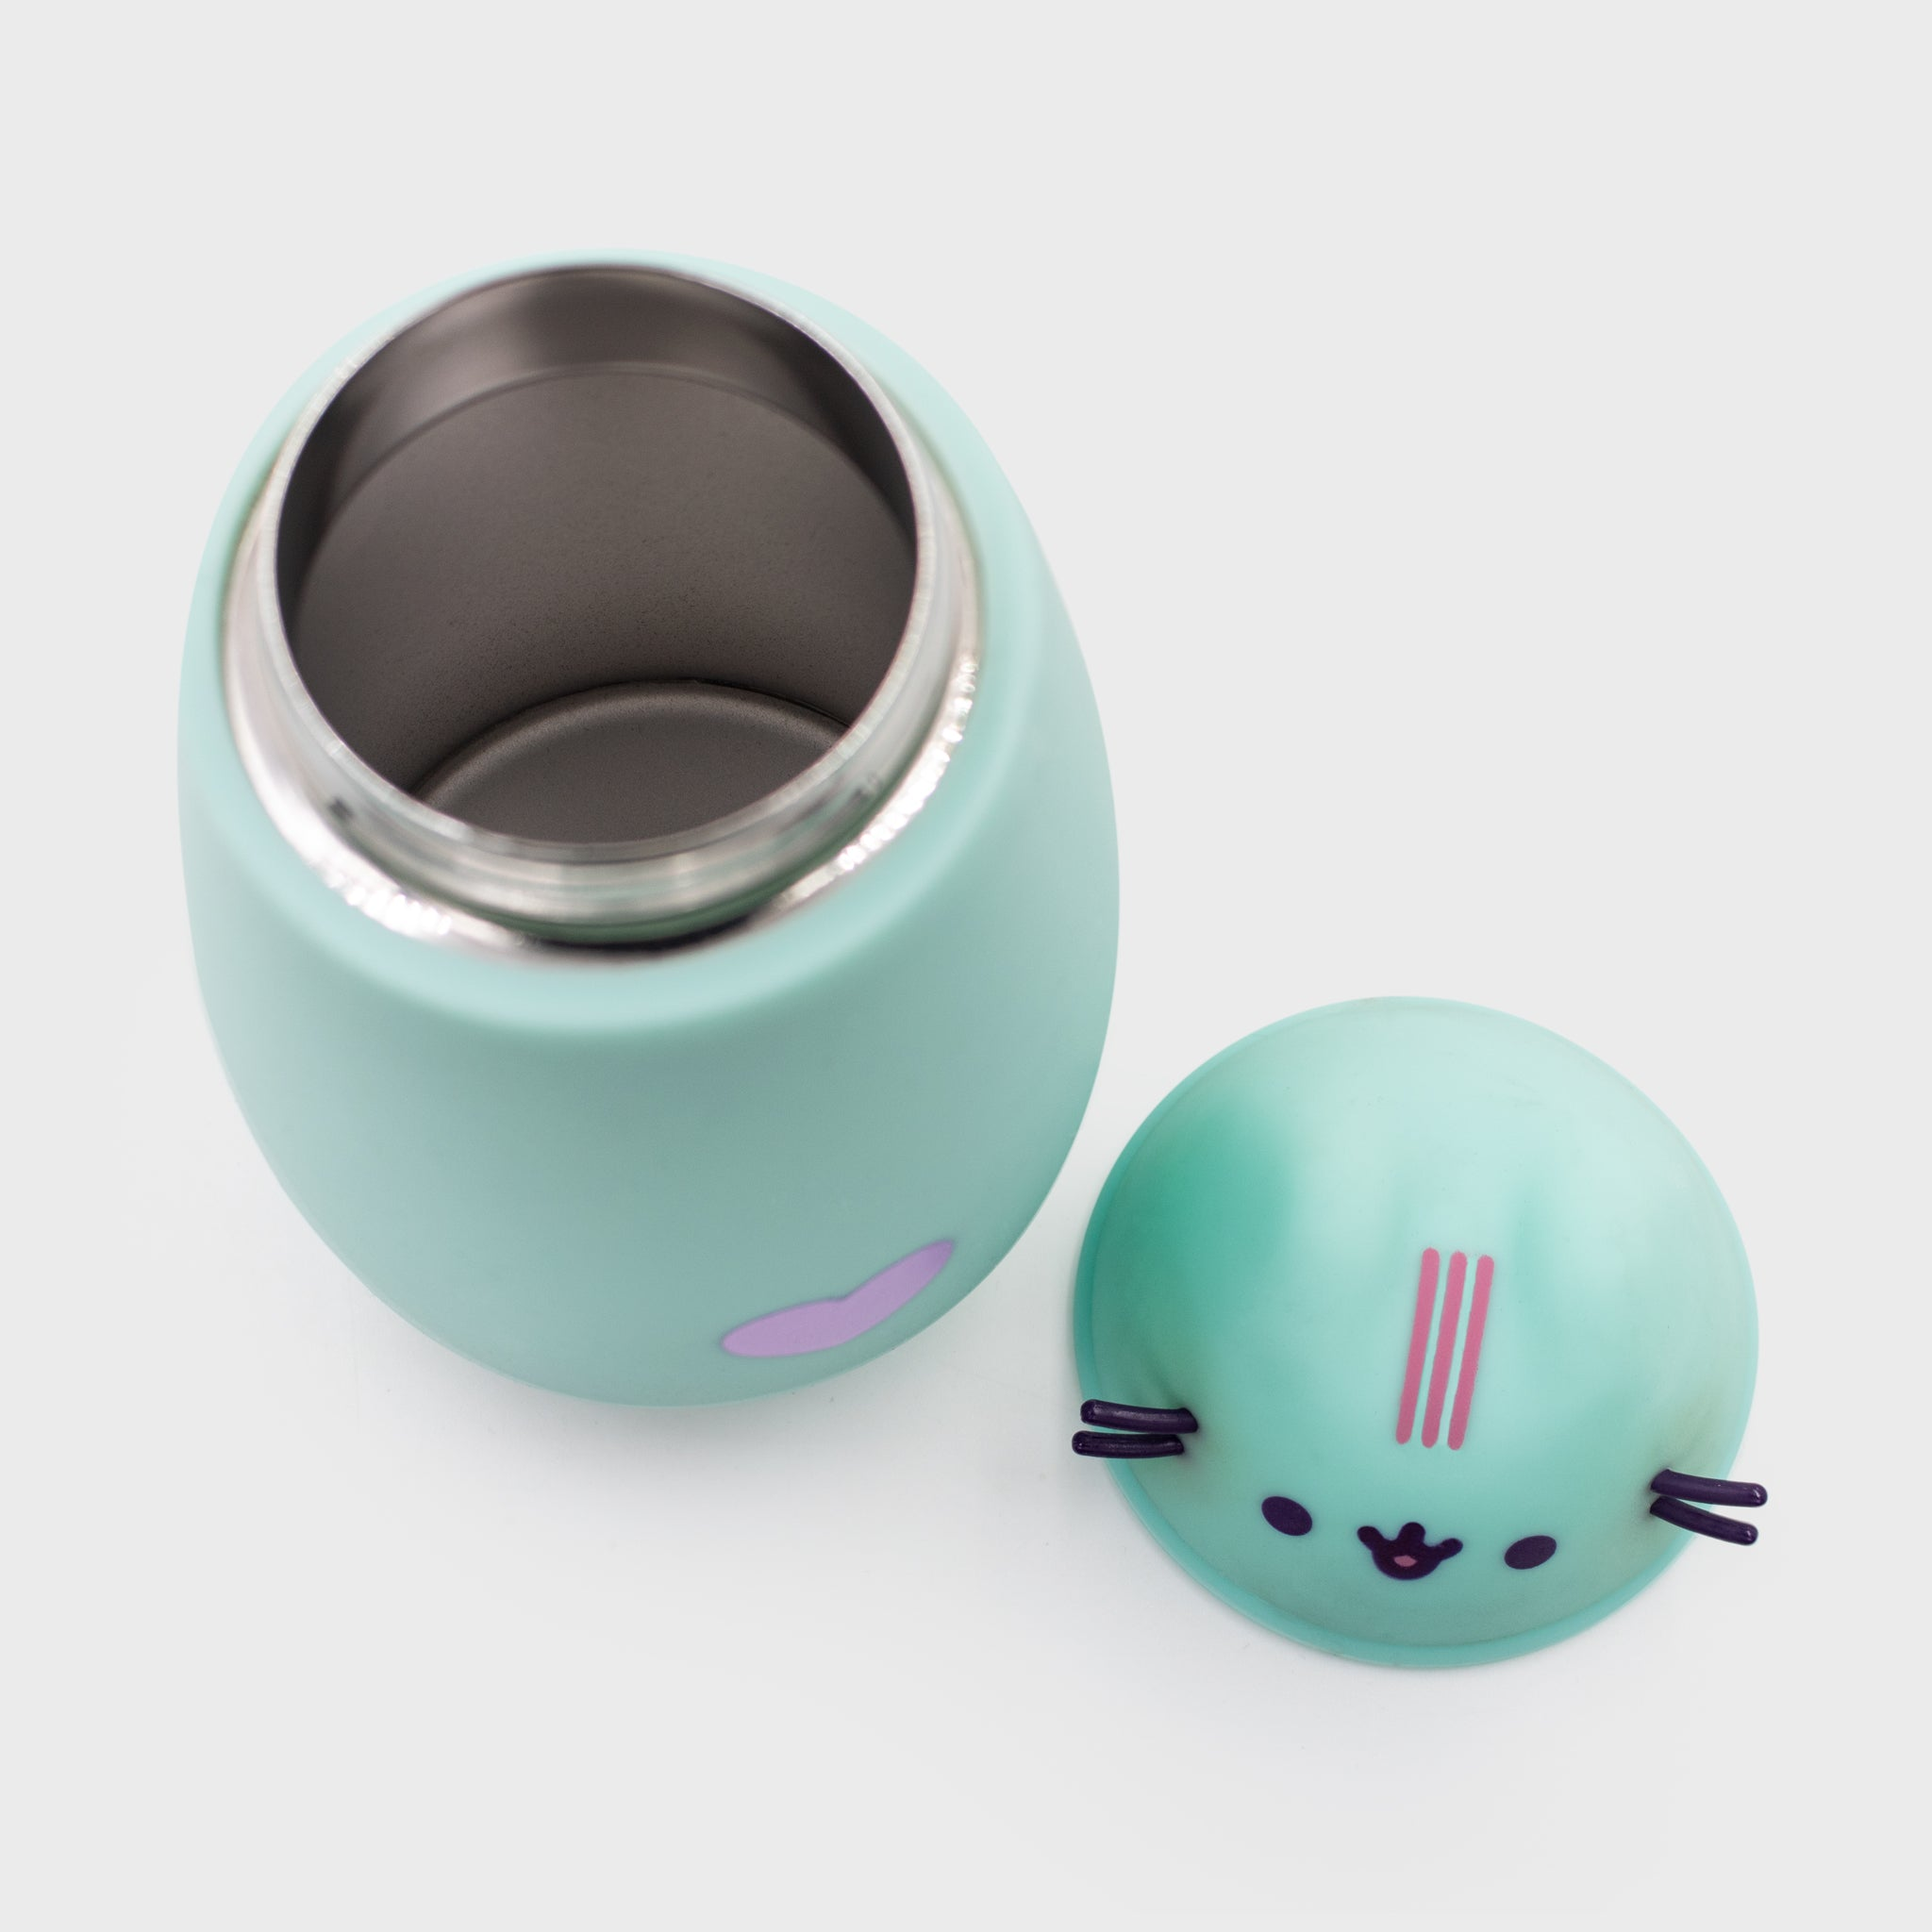 pusheen mint thermos stainless steel lunch hot food drinks cold kitchenware cute cat culturefly